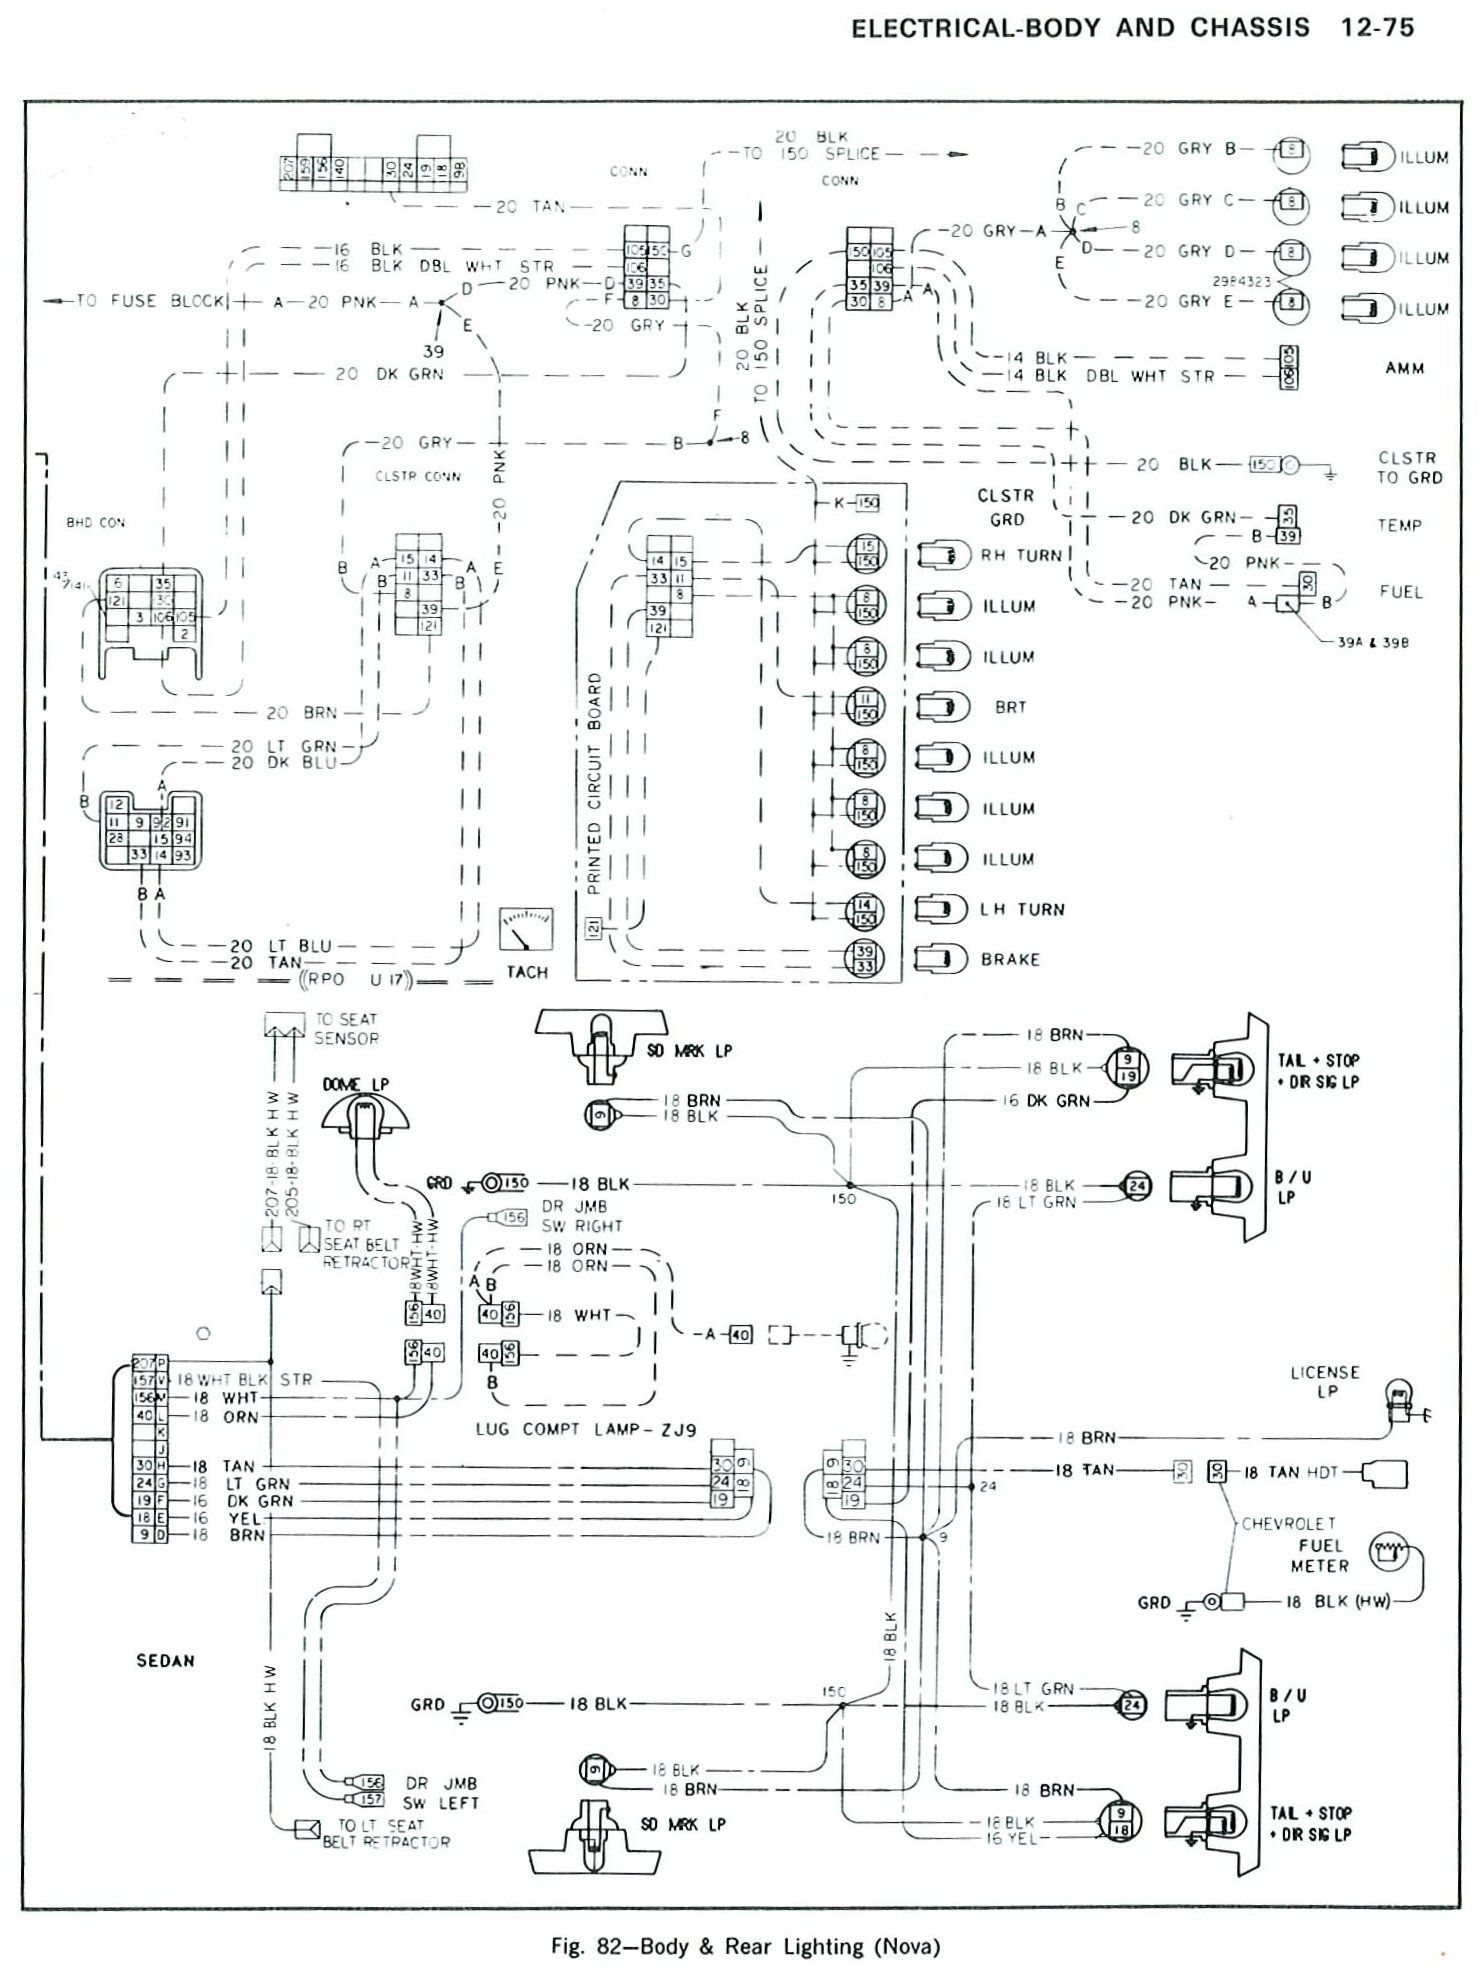 85 Chevy Pickup Wiring Diagram Free Download Block And Schematic 1979 350 Motor For Cub Supamatic Regal Camper Trailer Rh Xwiaw Us Engine